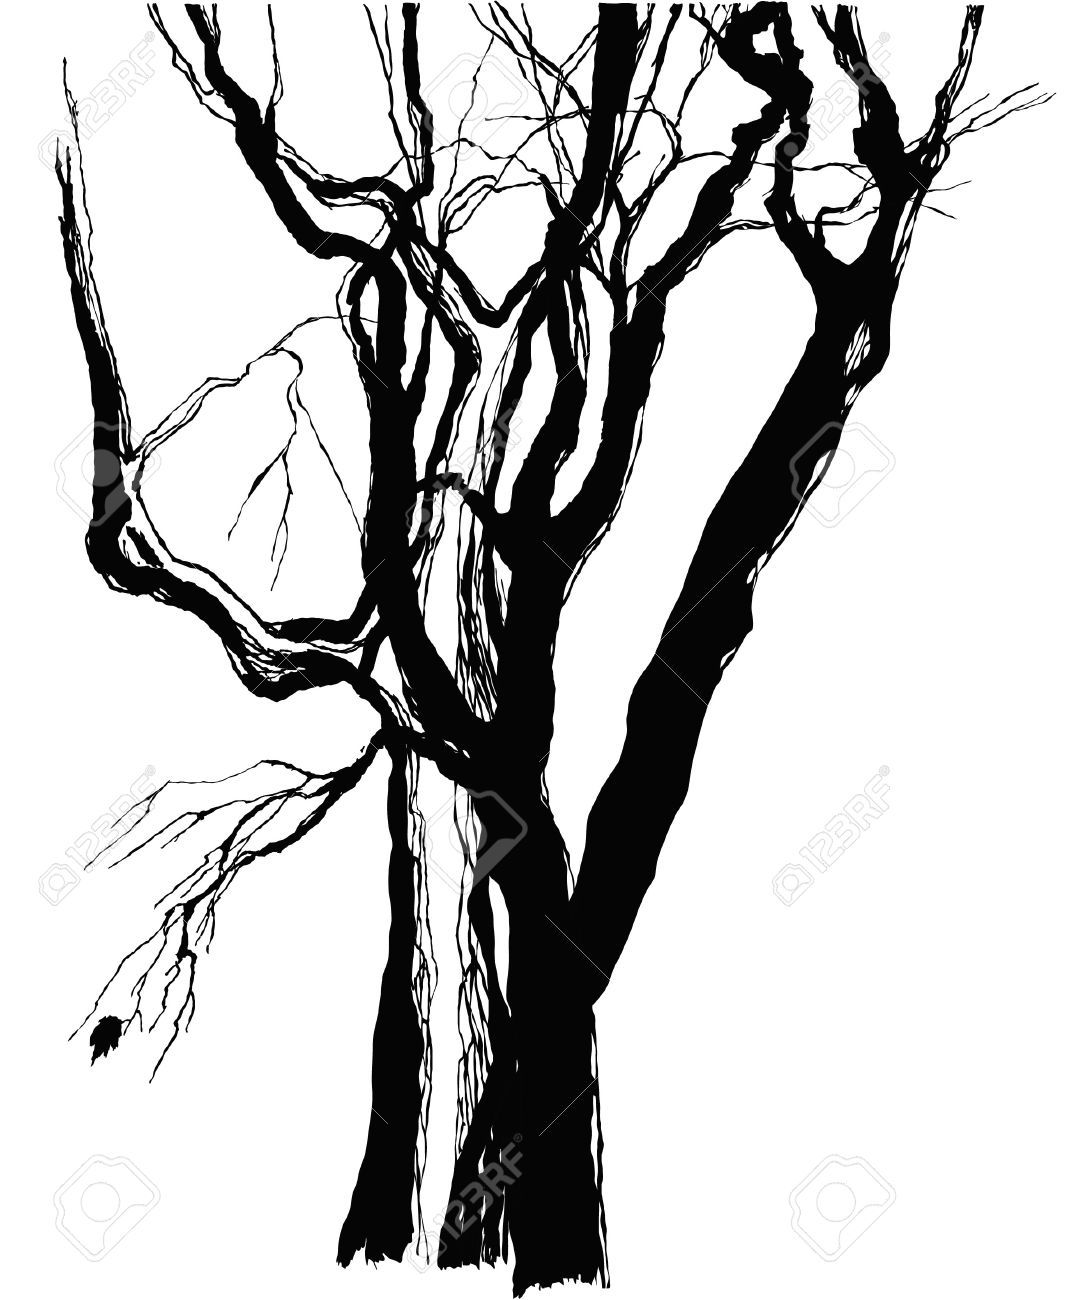 1068x1300 7506112 Old Trees Drawing Graphic Sketch Stock Photo Tree.jpg